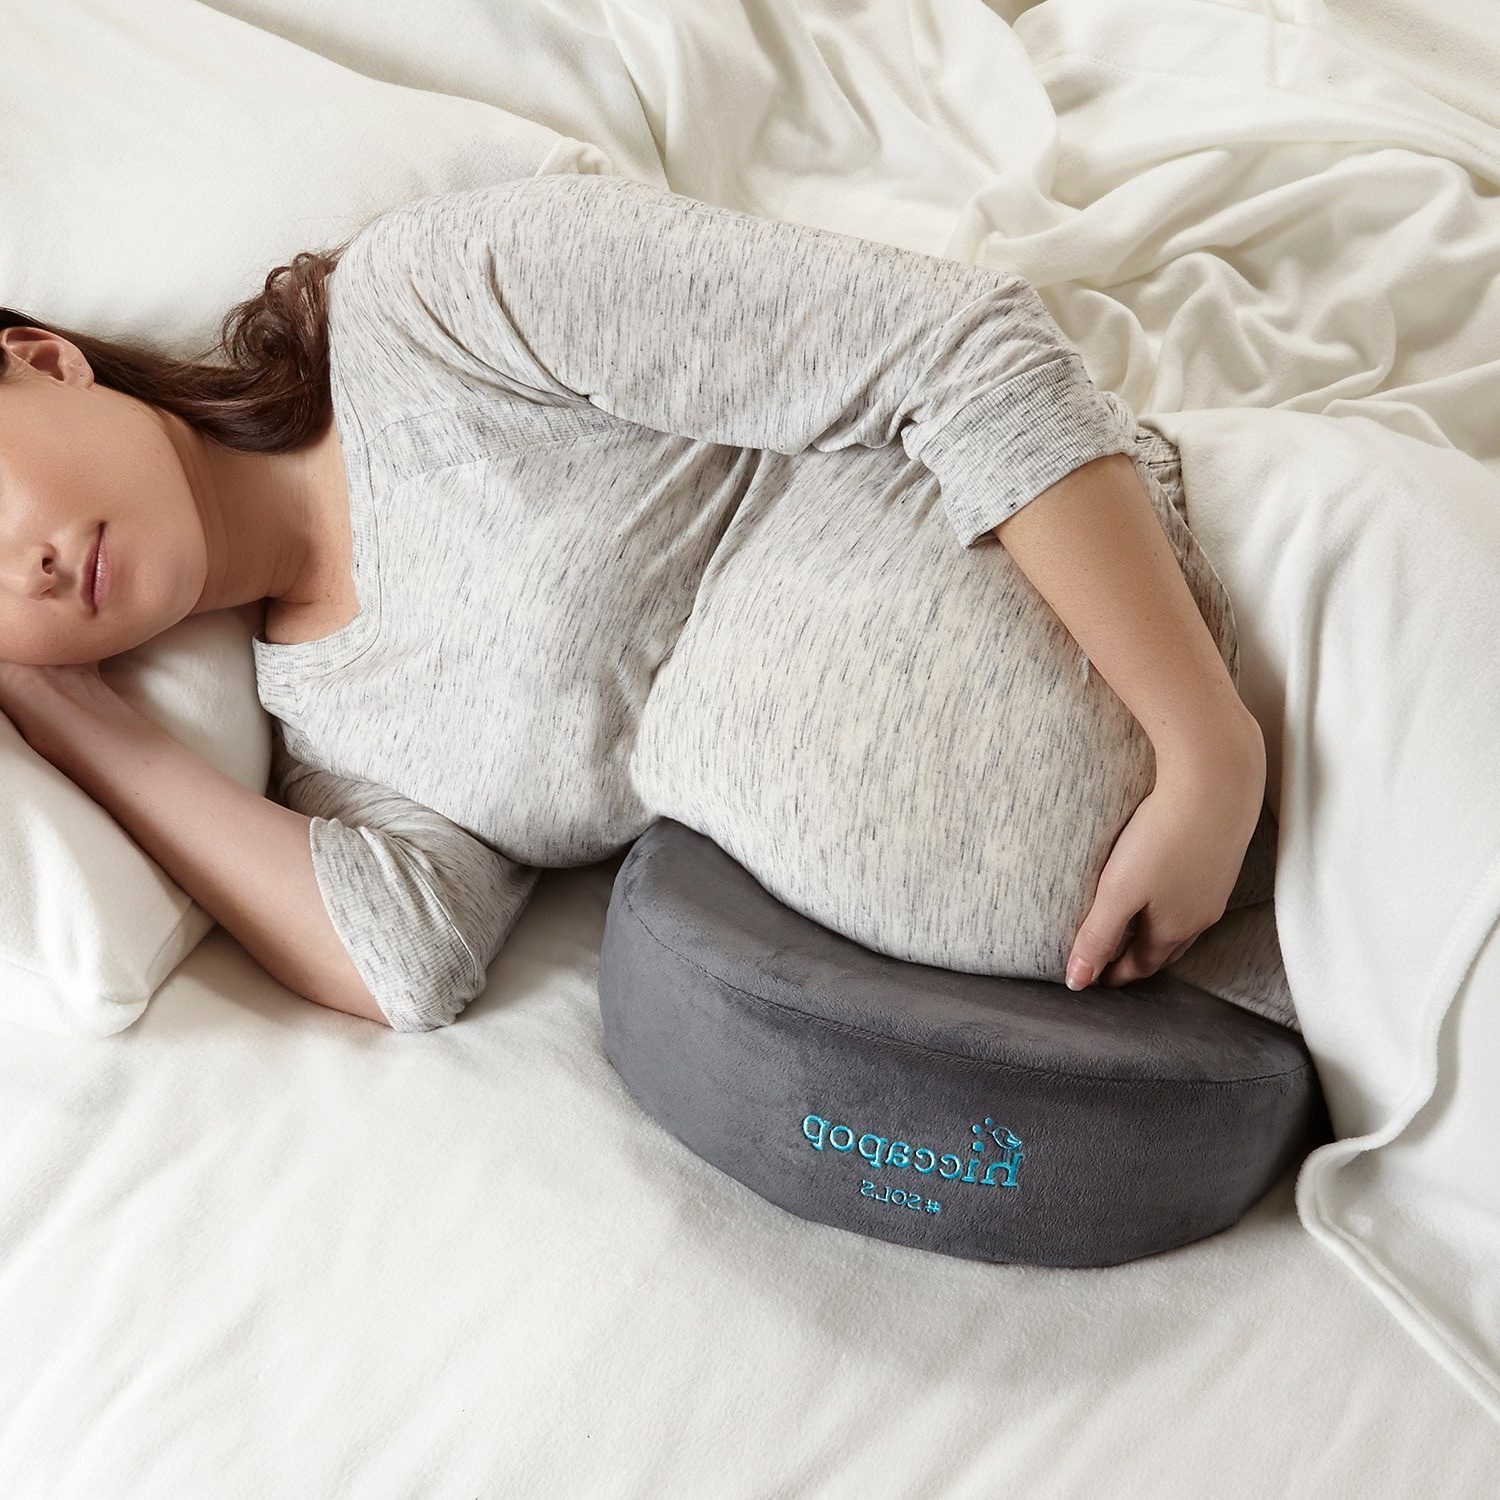 What are the Best Pillows for Pregnant Women?